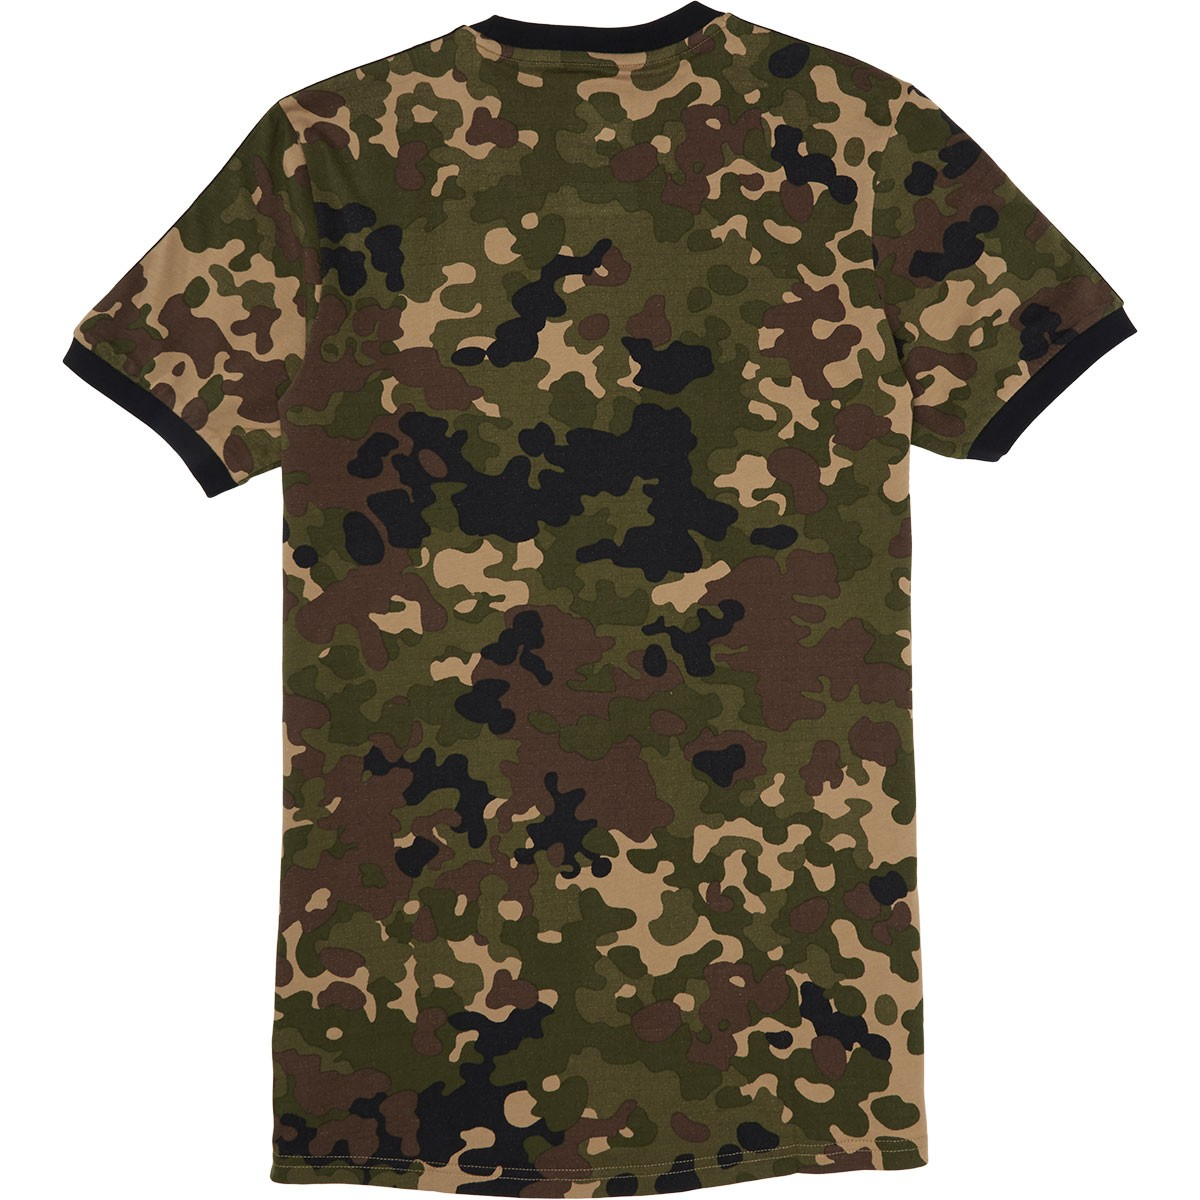 Adidas striped camo t shirt camo print black for Camouflage t shirt printing